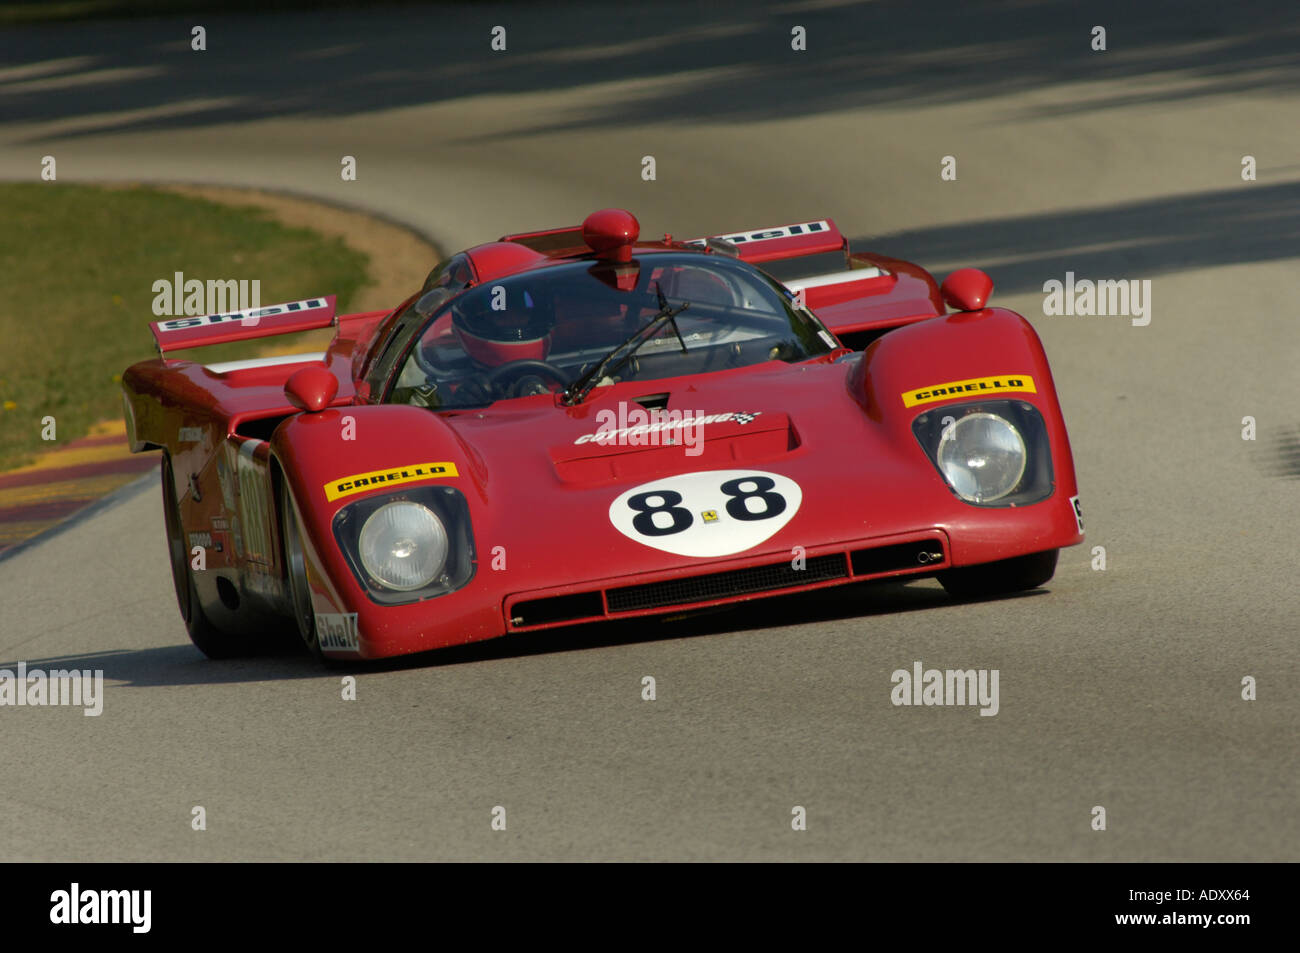 ferrari historic challenge photos ferrari historic challenge images alamy. Black Bedroom Furniture Sets. Home Design Ideas